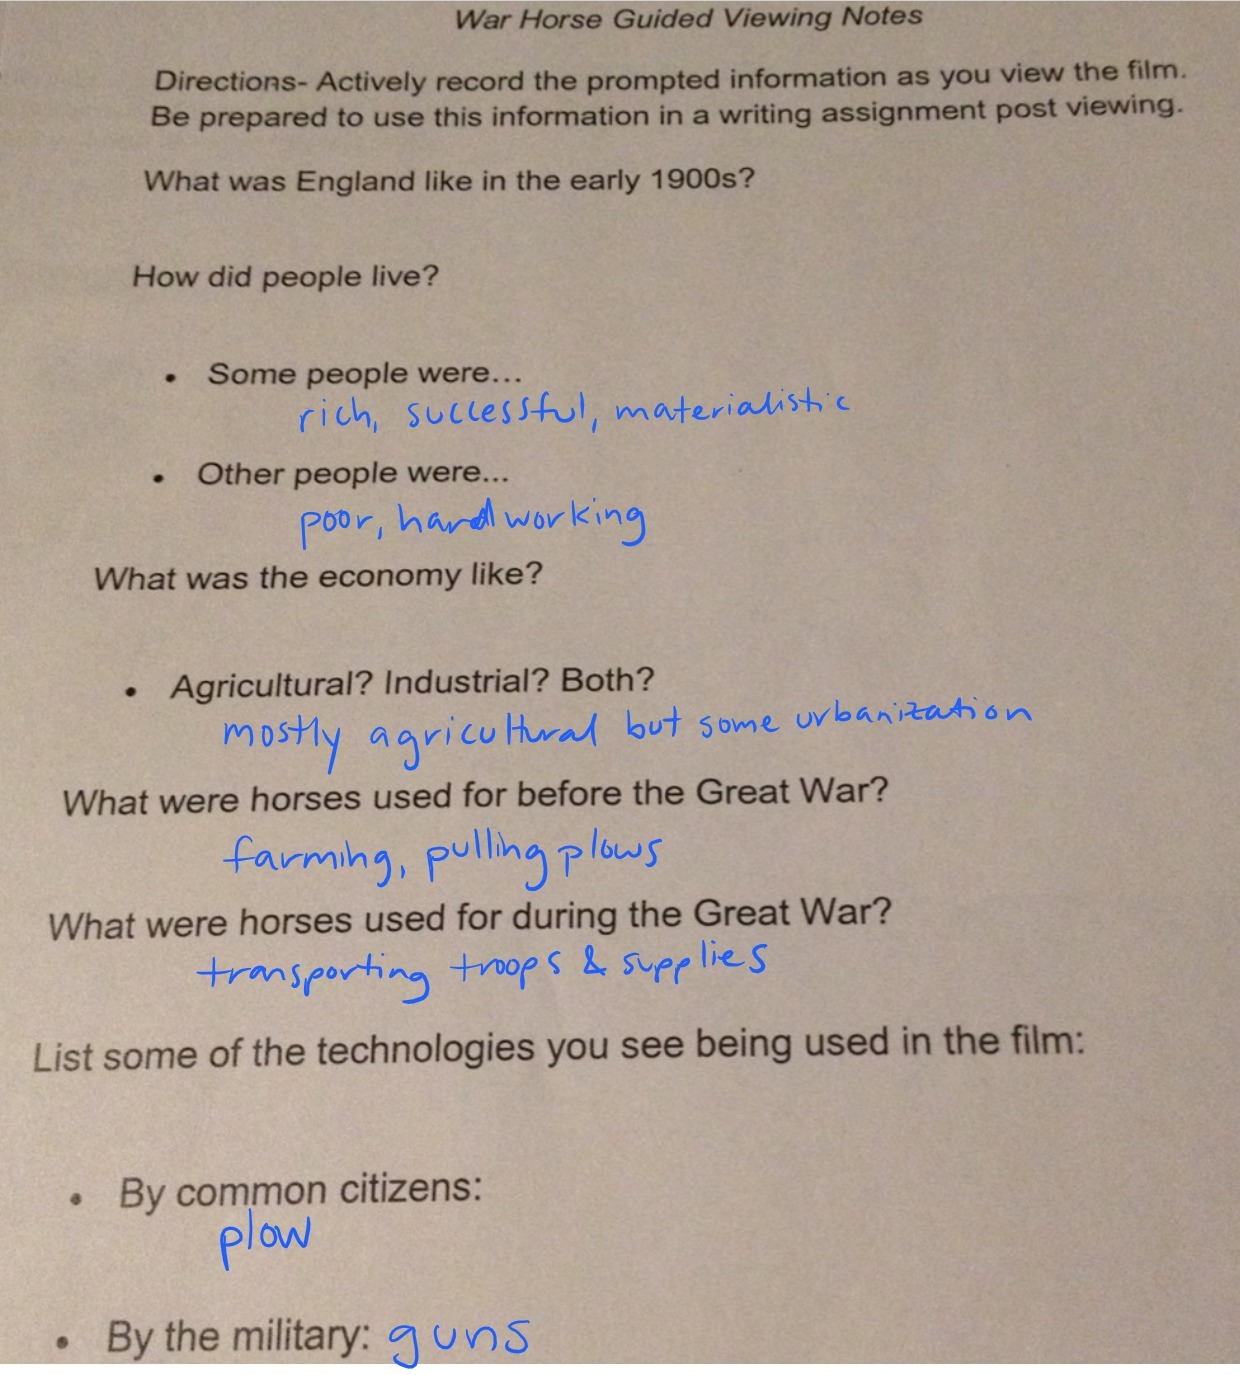 War Horse Movie Guided Movie Notes Worksheet